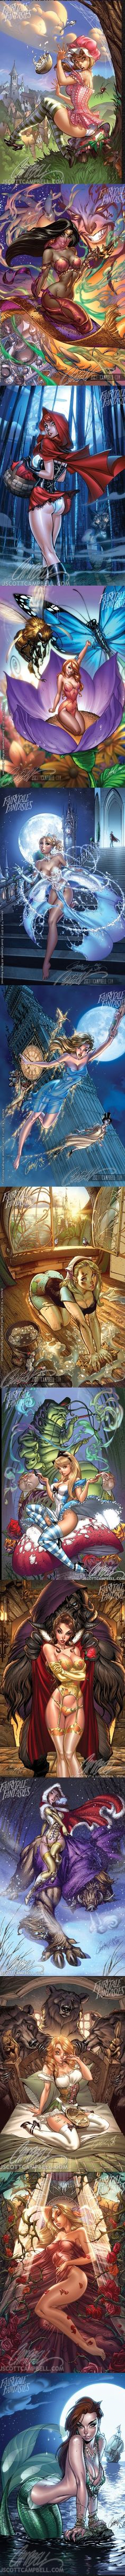 http://static.fjcdn.com/pictures/Fairy+Tale+Fantasies_ba5550_3136330.jpg